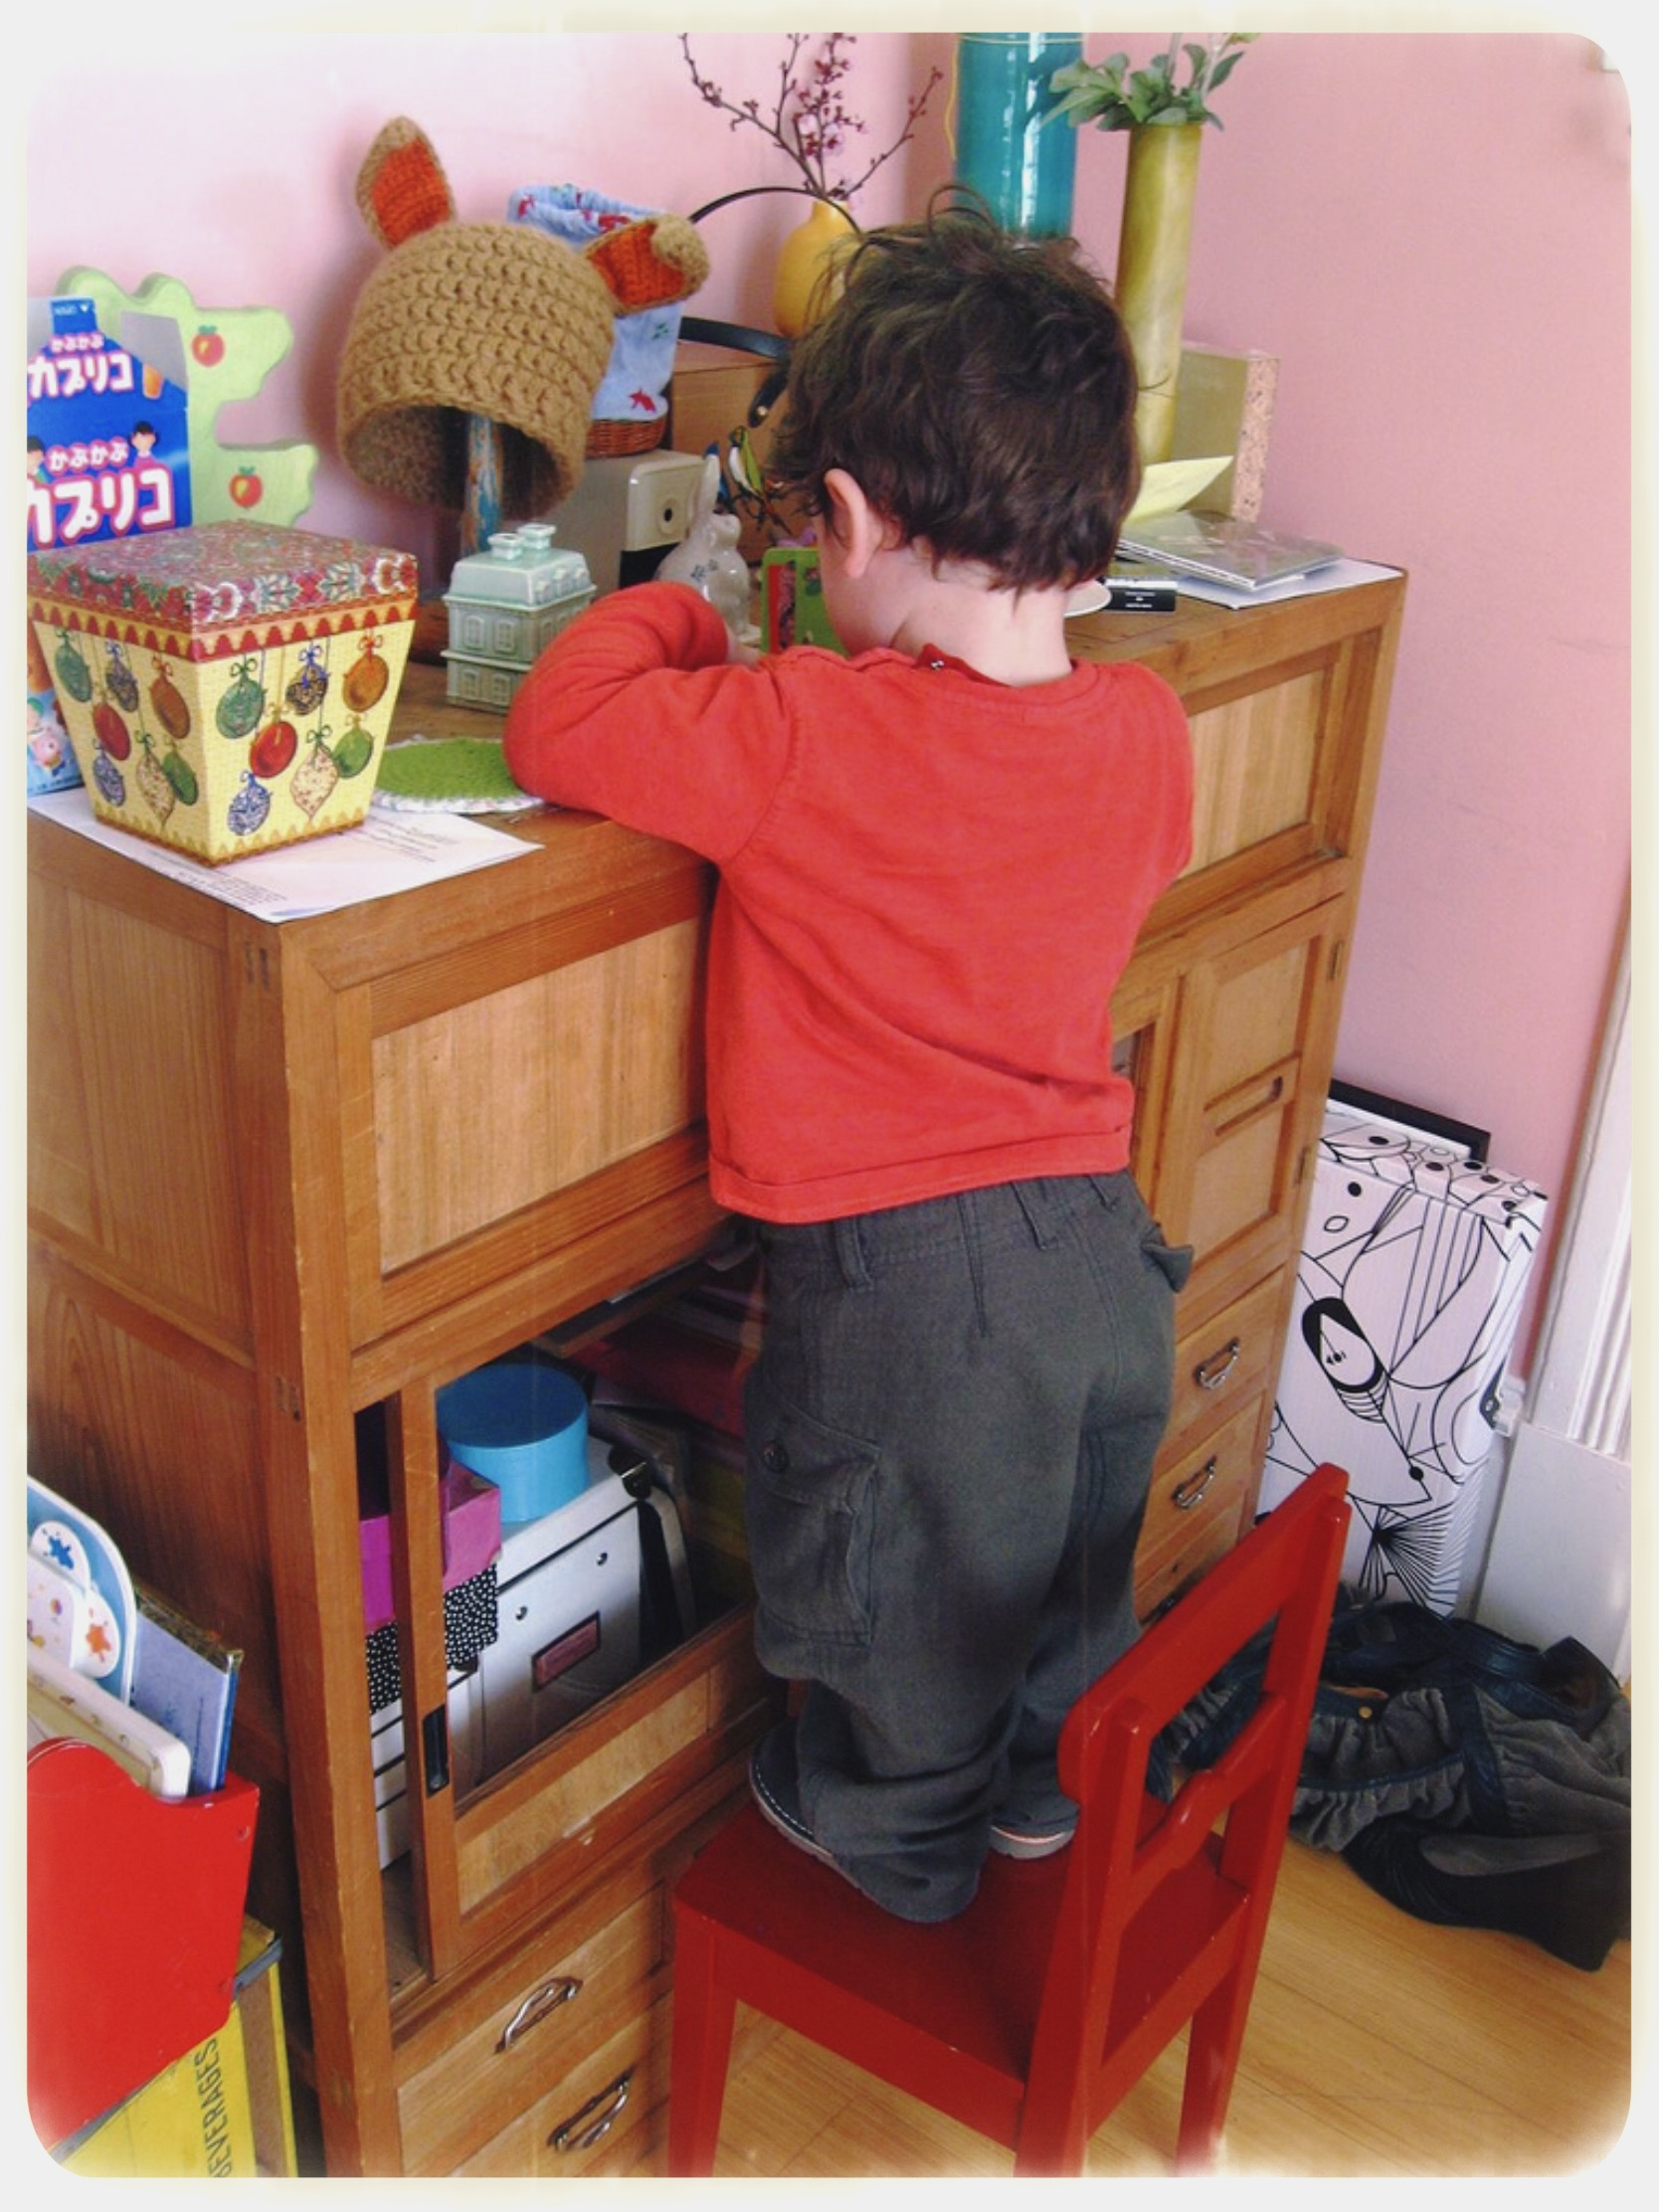 This 22 months old toddler found a way to access the most fragile stuff...but also prouver he was careful enough to play with it for a little bit.